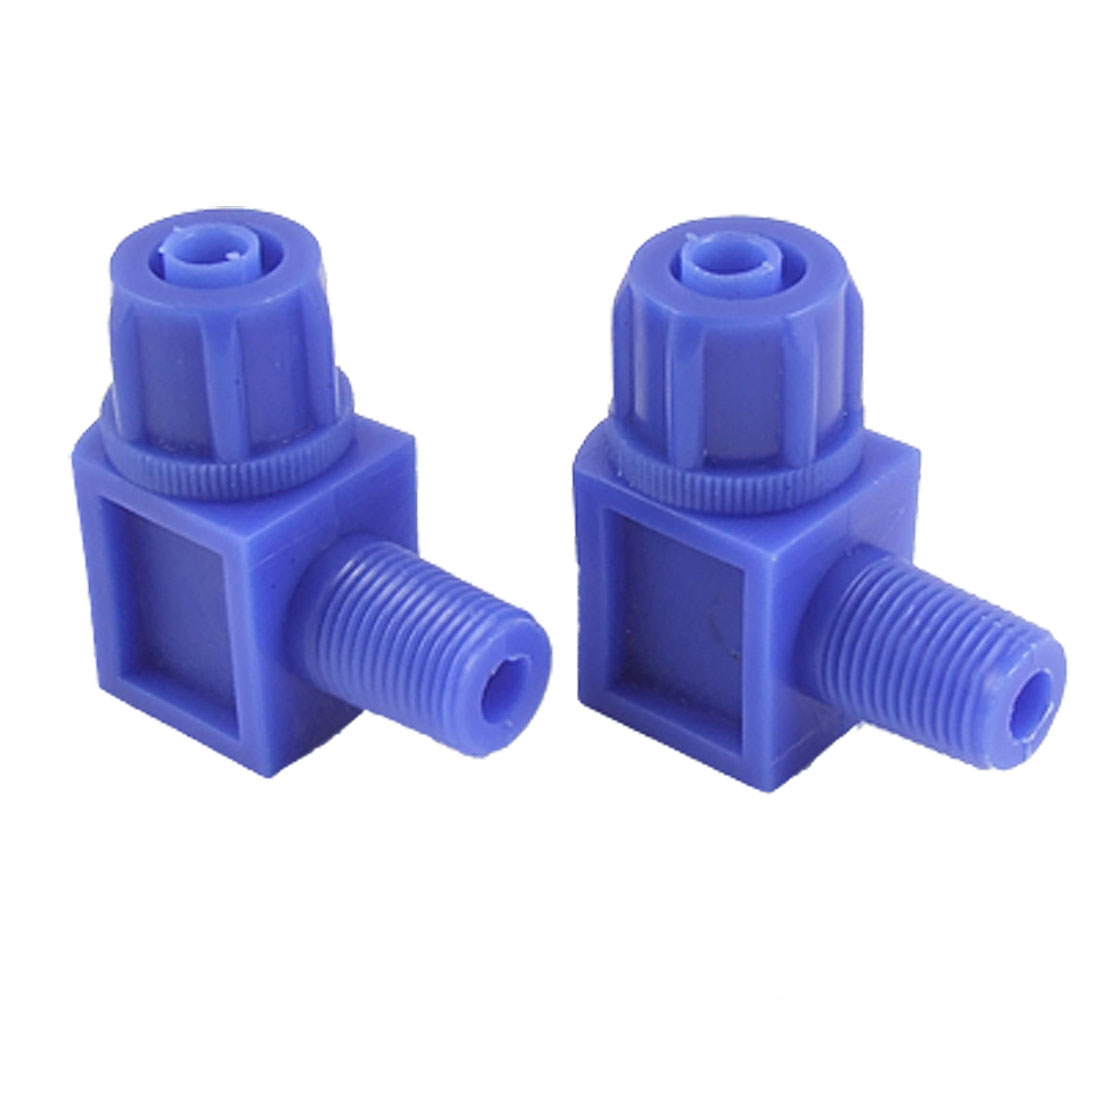 6 x 8mm Pipe Pneumatic Fitting Quick Connector 2 Pcs